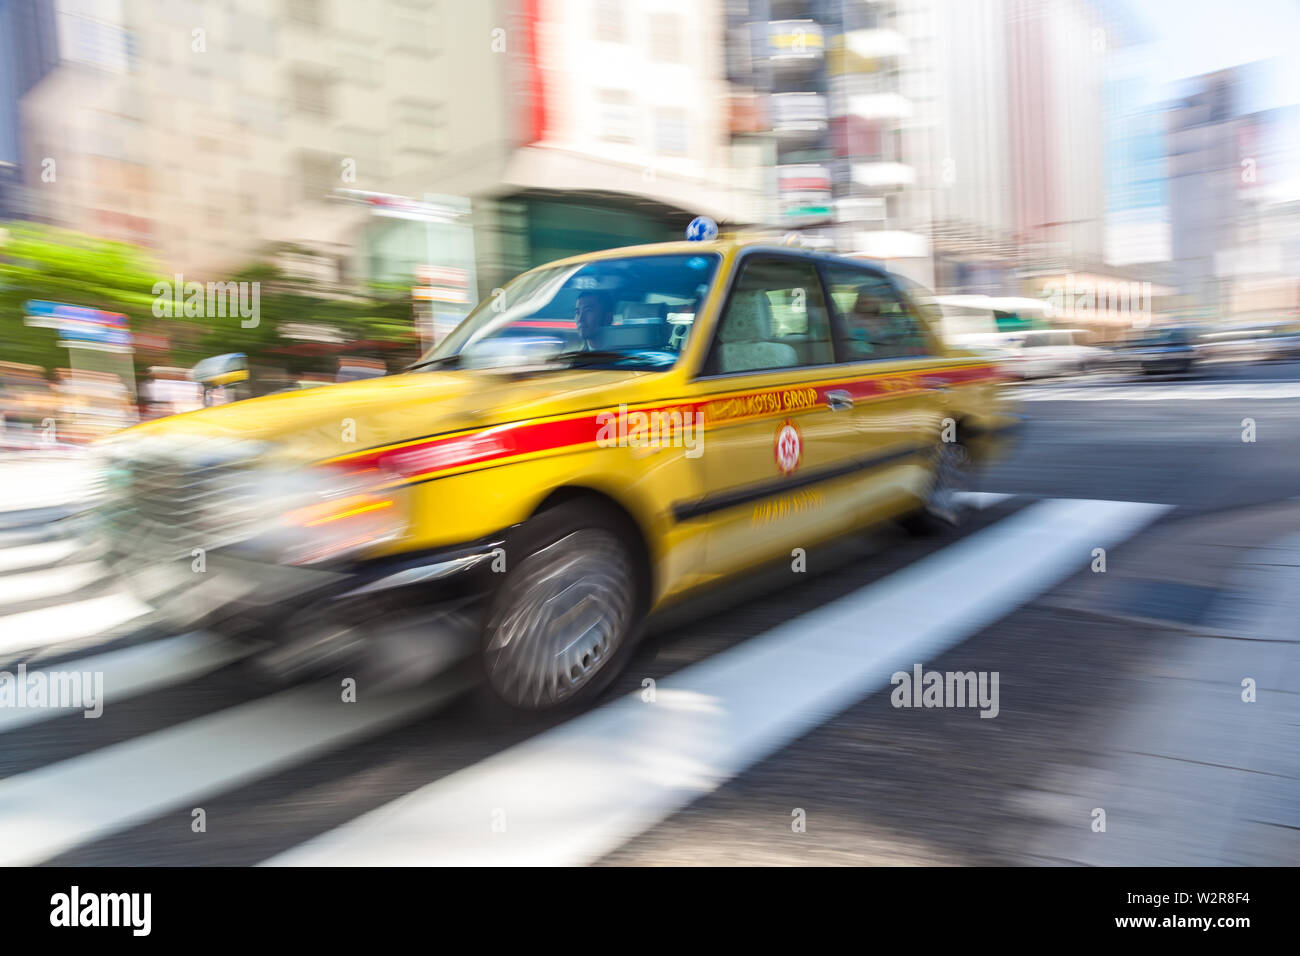 TOKYO, JAPAN – JUNE 06 2015: Motion blurred yellow taxi cab on pedestrian crossing, Tokyo, Japan. - Stock Image